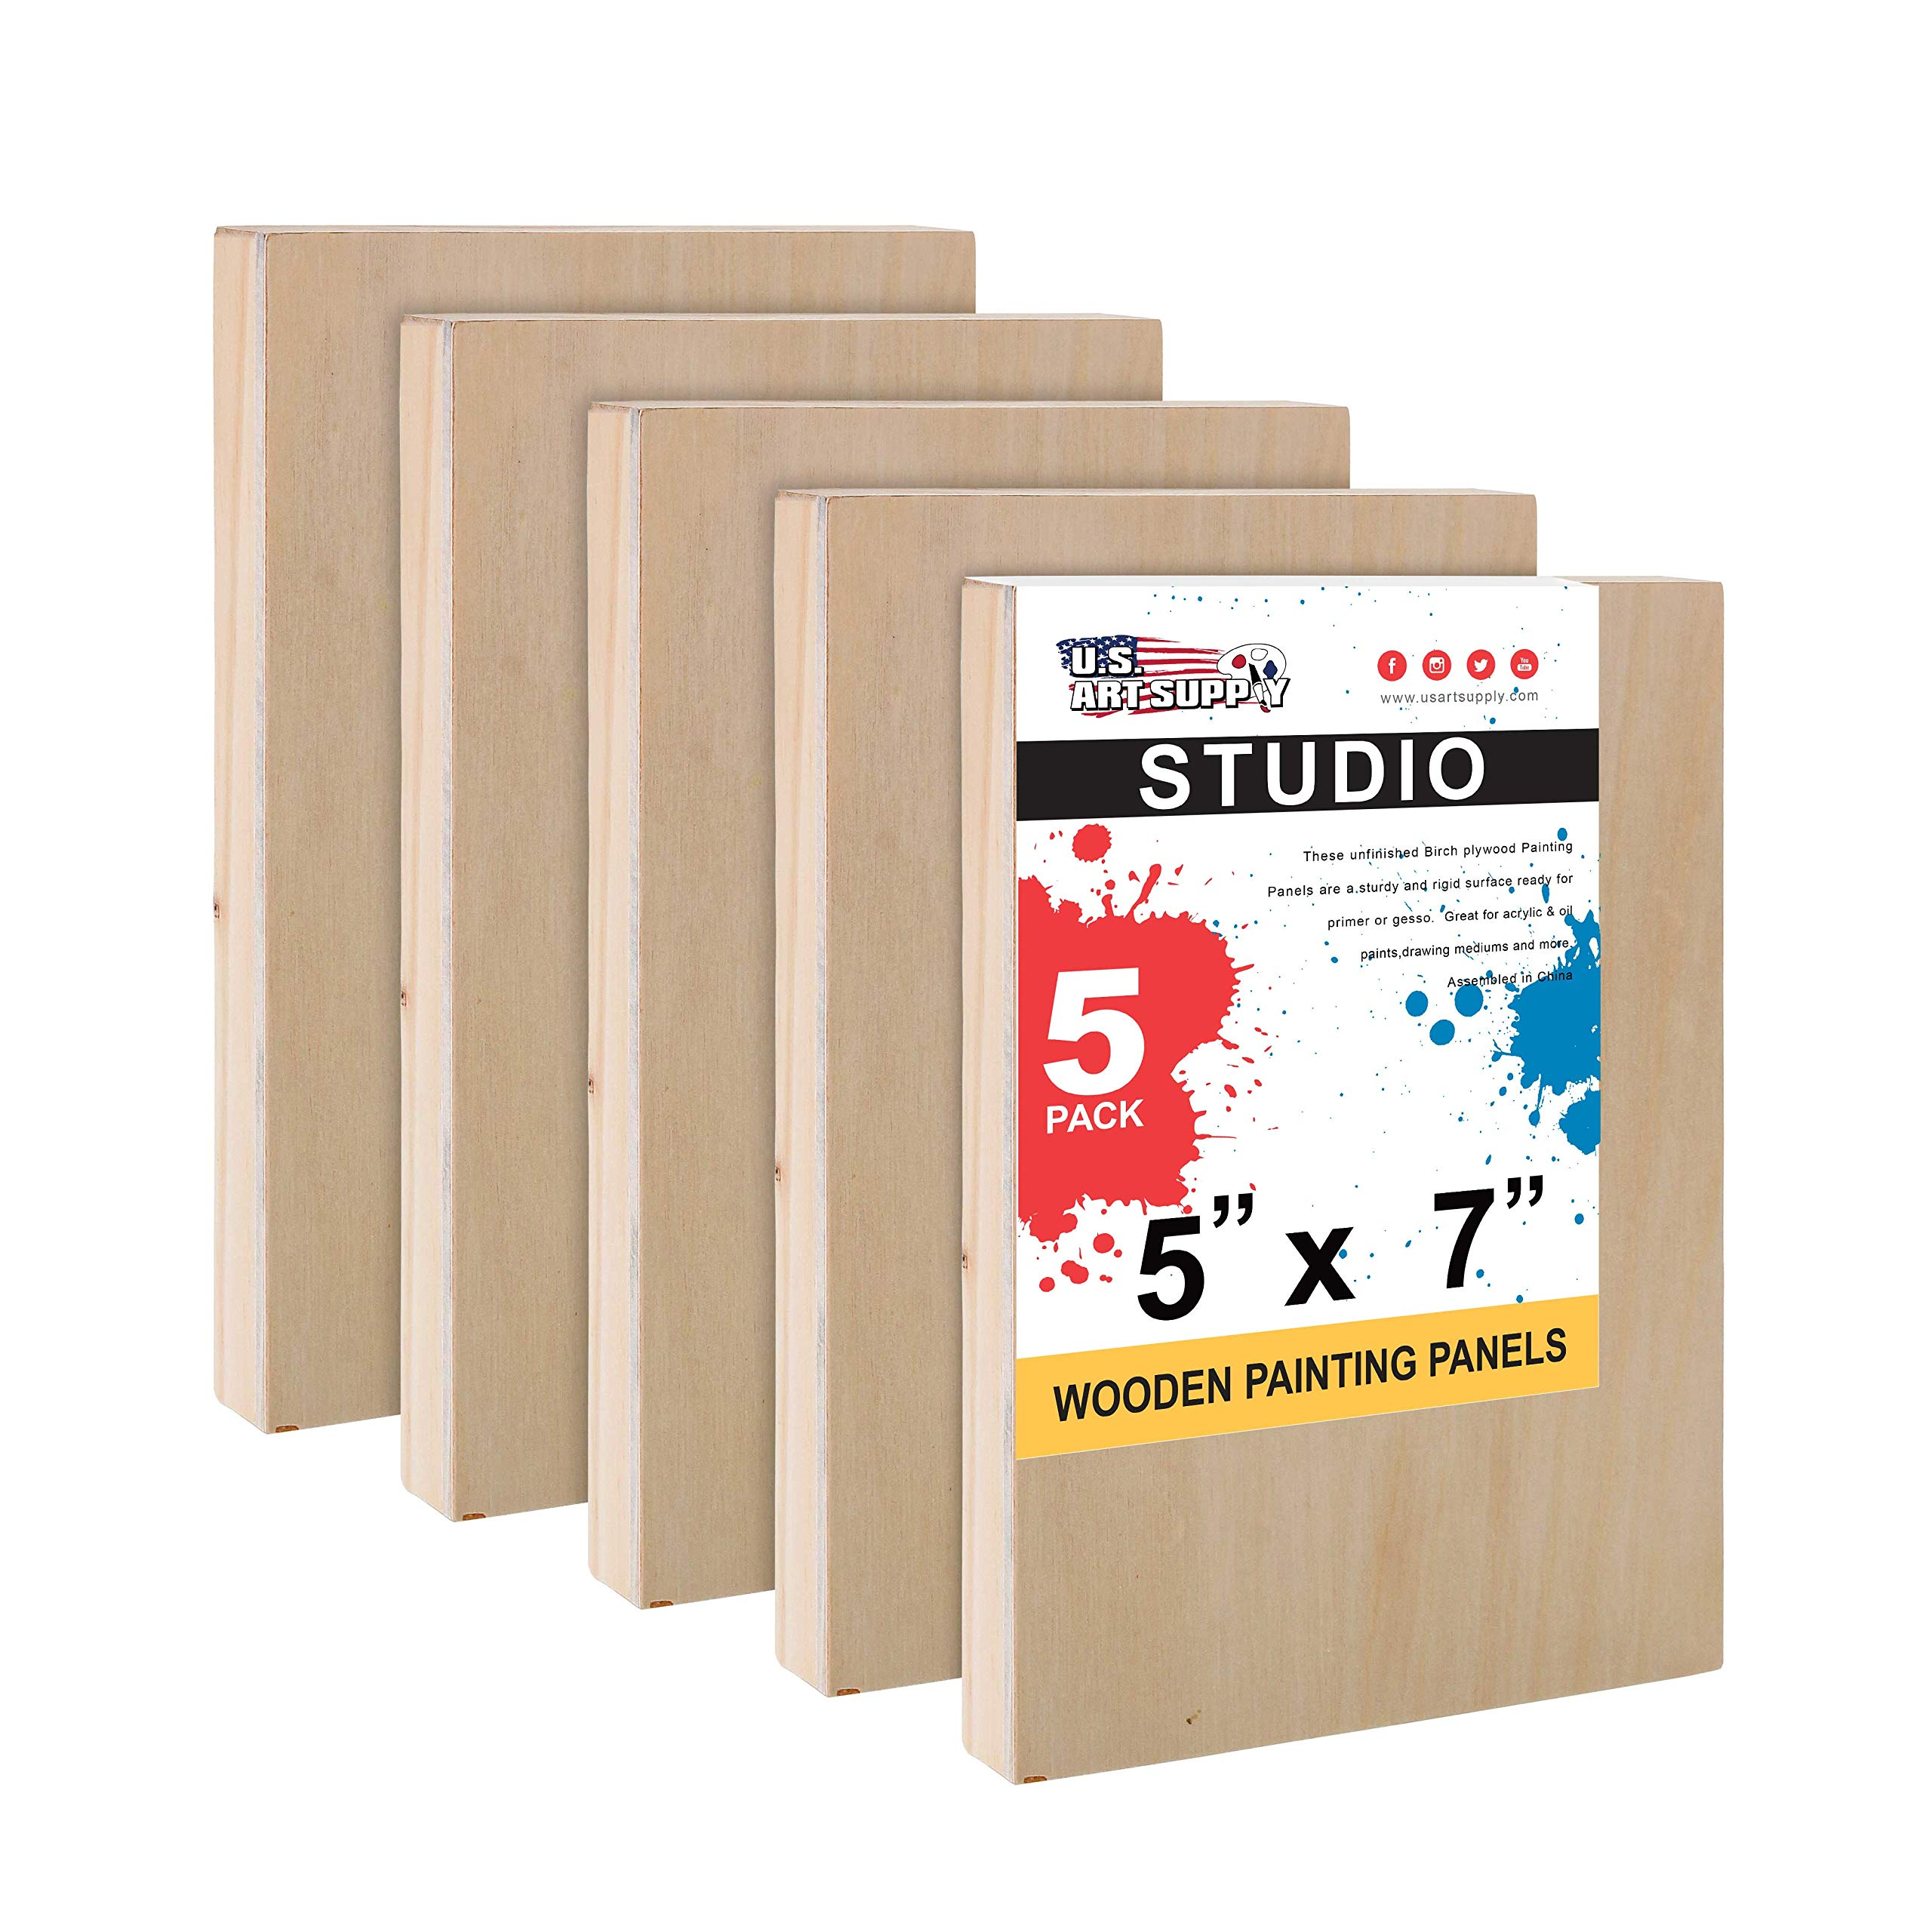 U.S. Art Supply 5'' x 7'' Birch Wood Paint Pouring Panel Boards, Studio 3/4'' Deep Cradle (Pack of 5) - Artist Wooden Wall Canvases - Painting Mixed-Media Craft, Acrylic, Oil, Watercolor, Encaustic by U.S. Art Supply